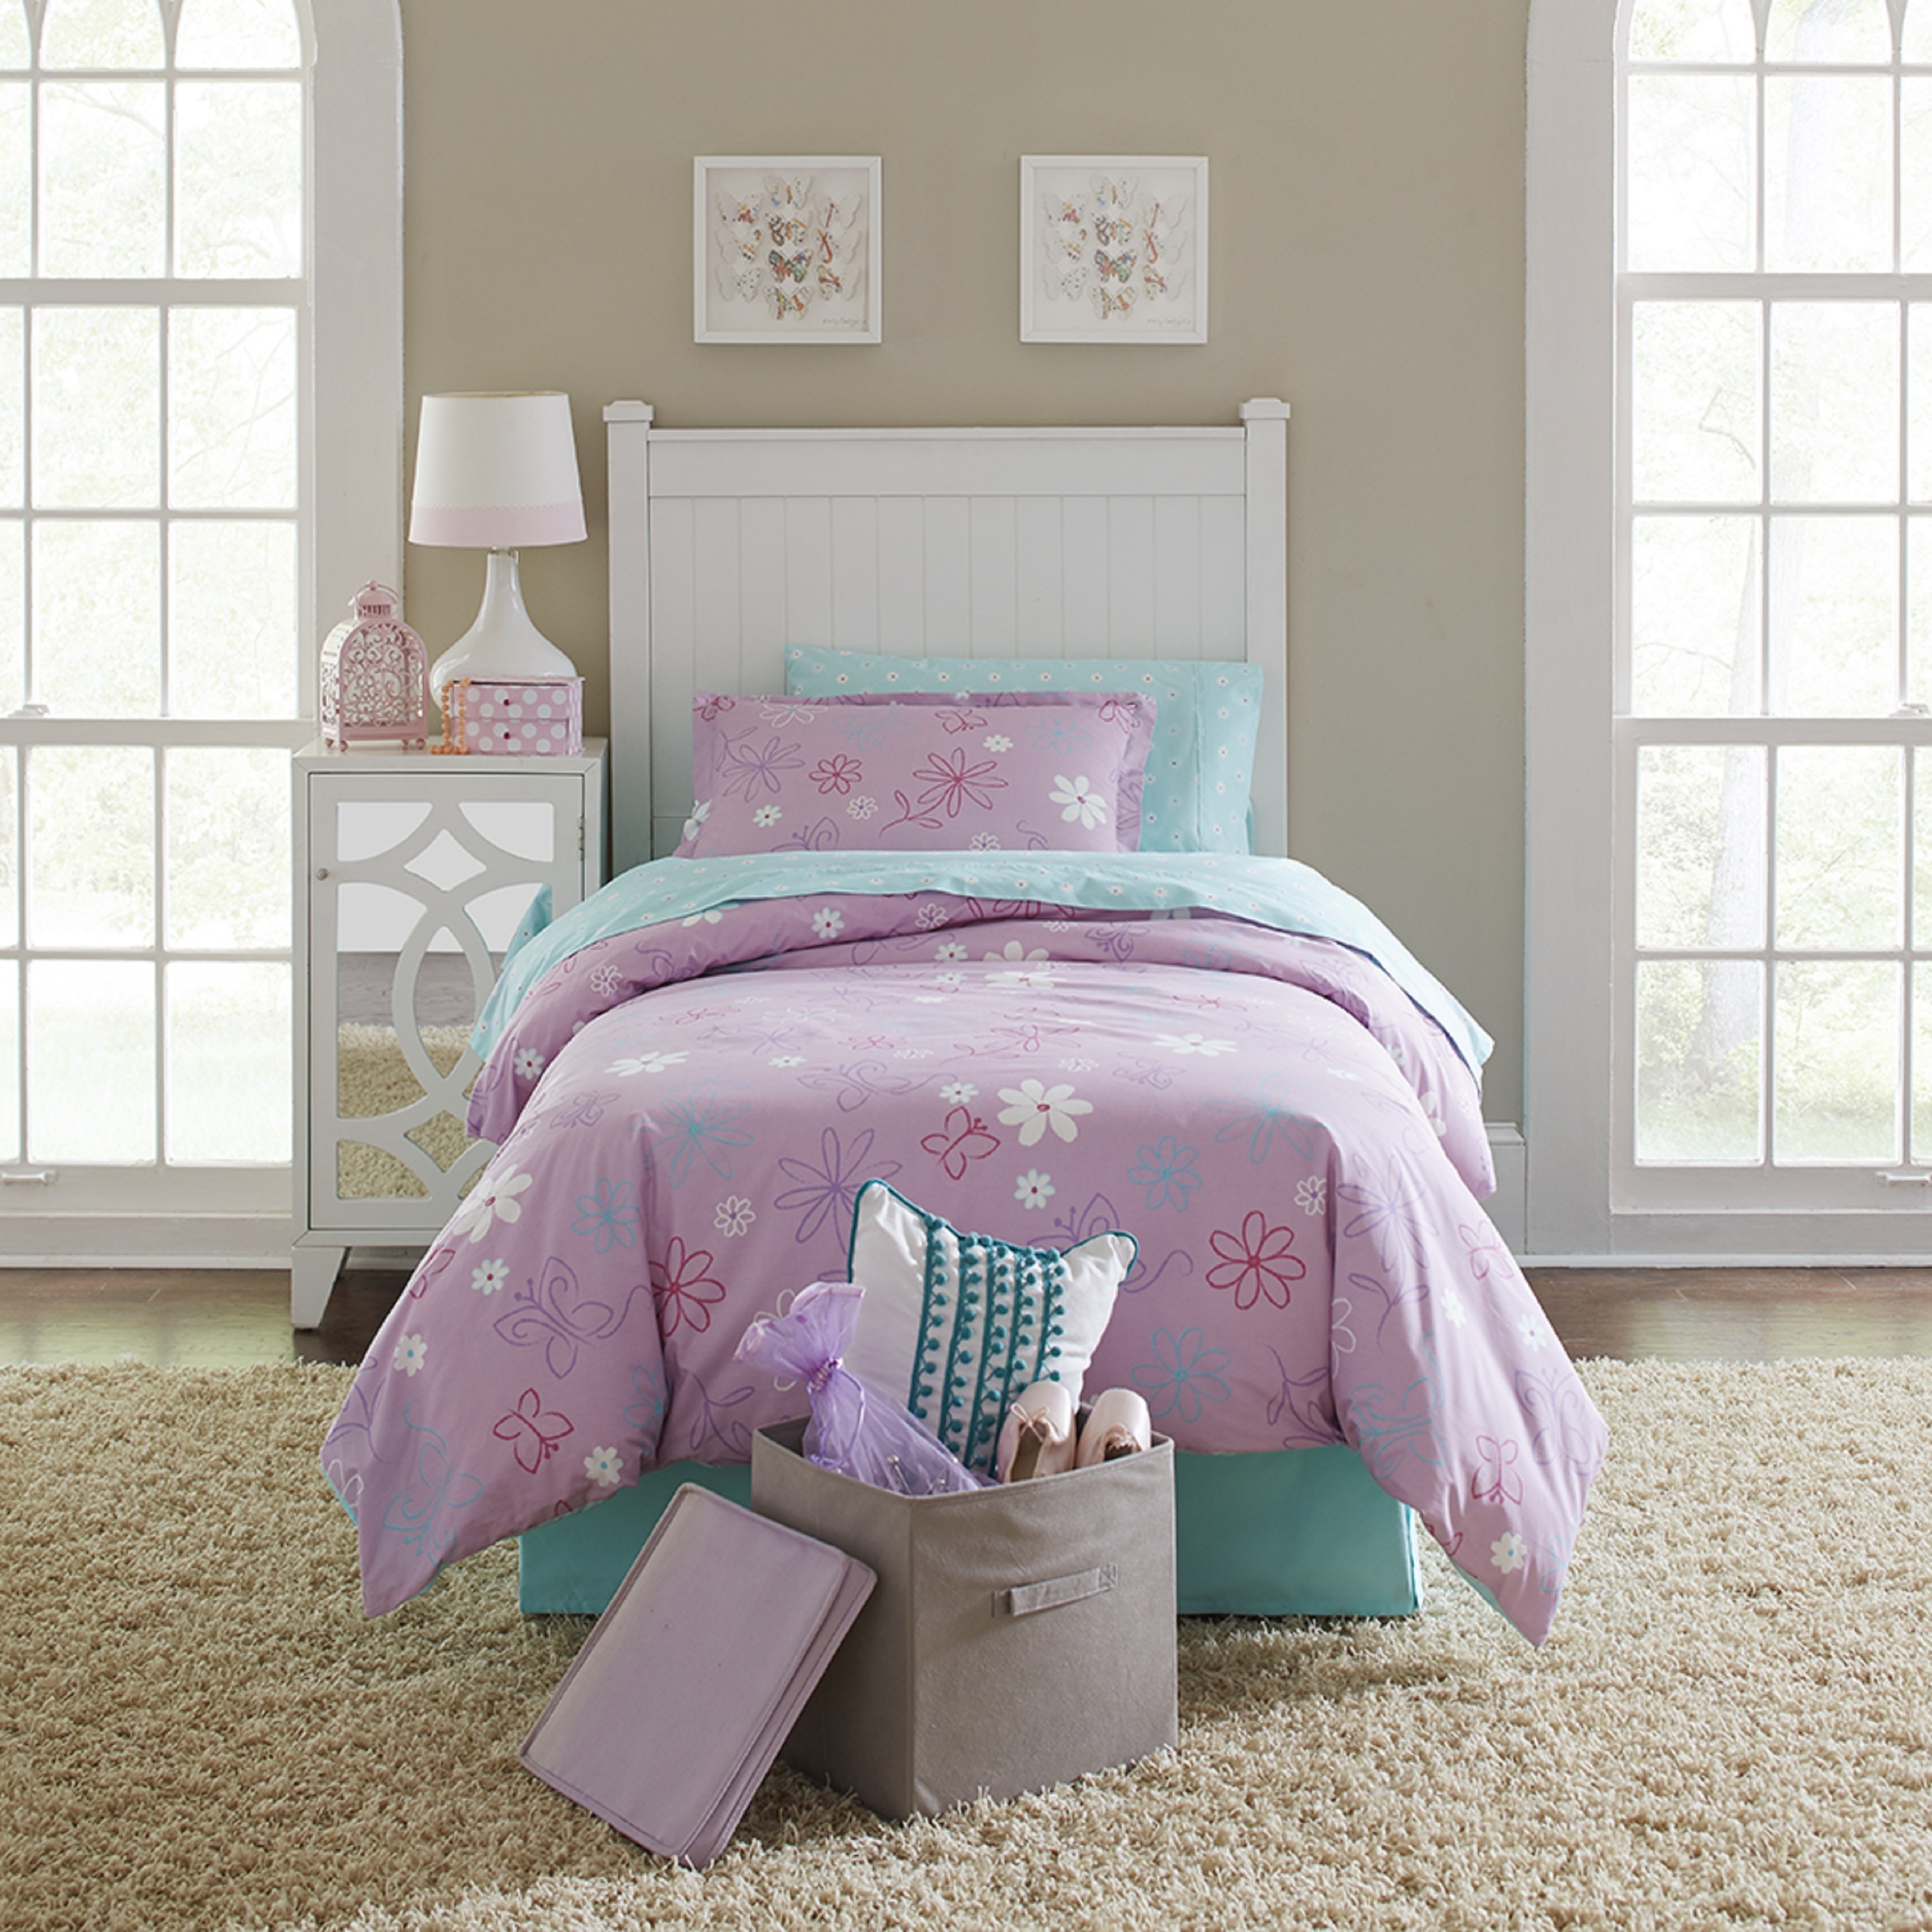 Lullaby Bedding Butterfly Garden Cotton Printed 4-piece C...